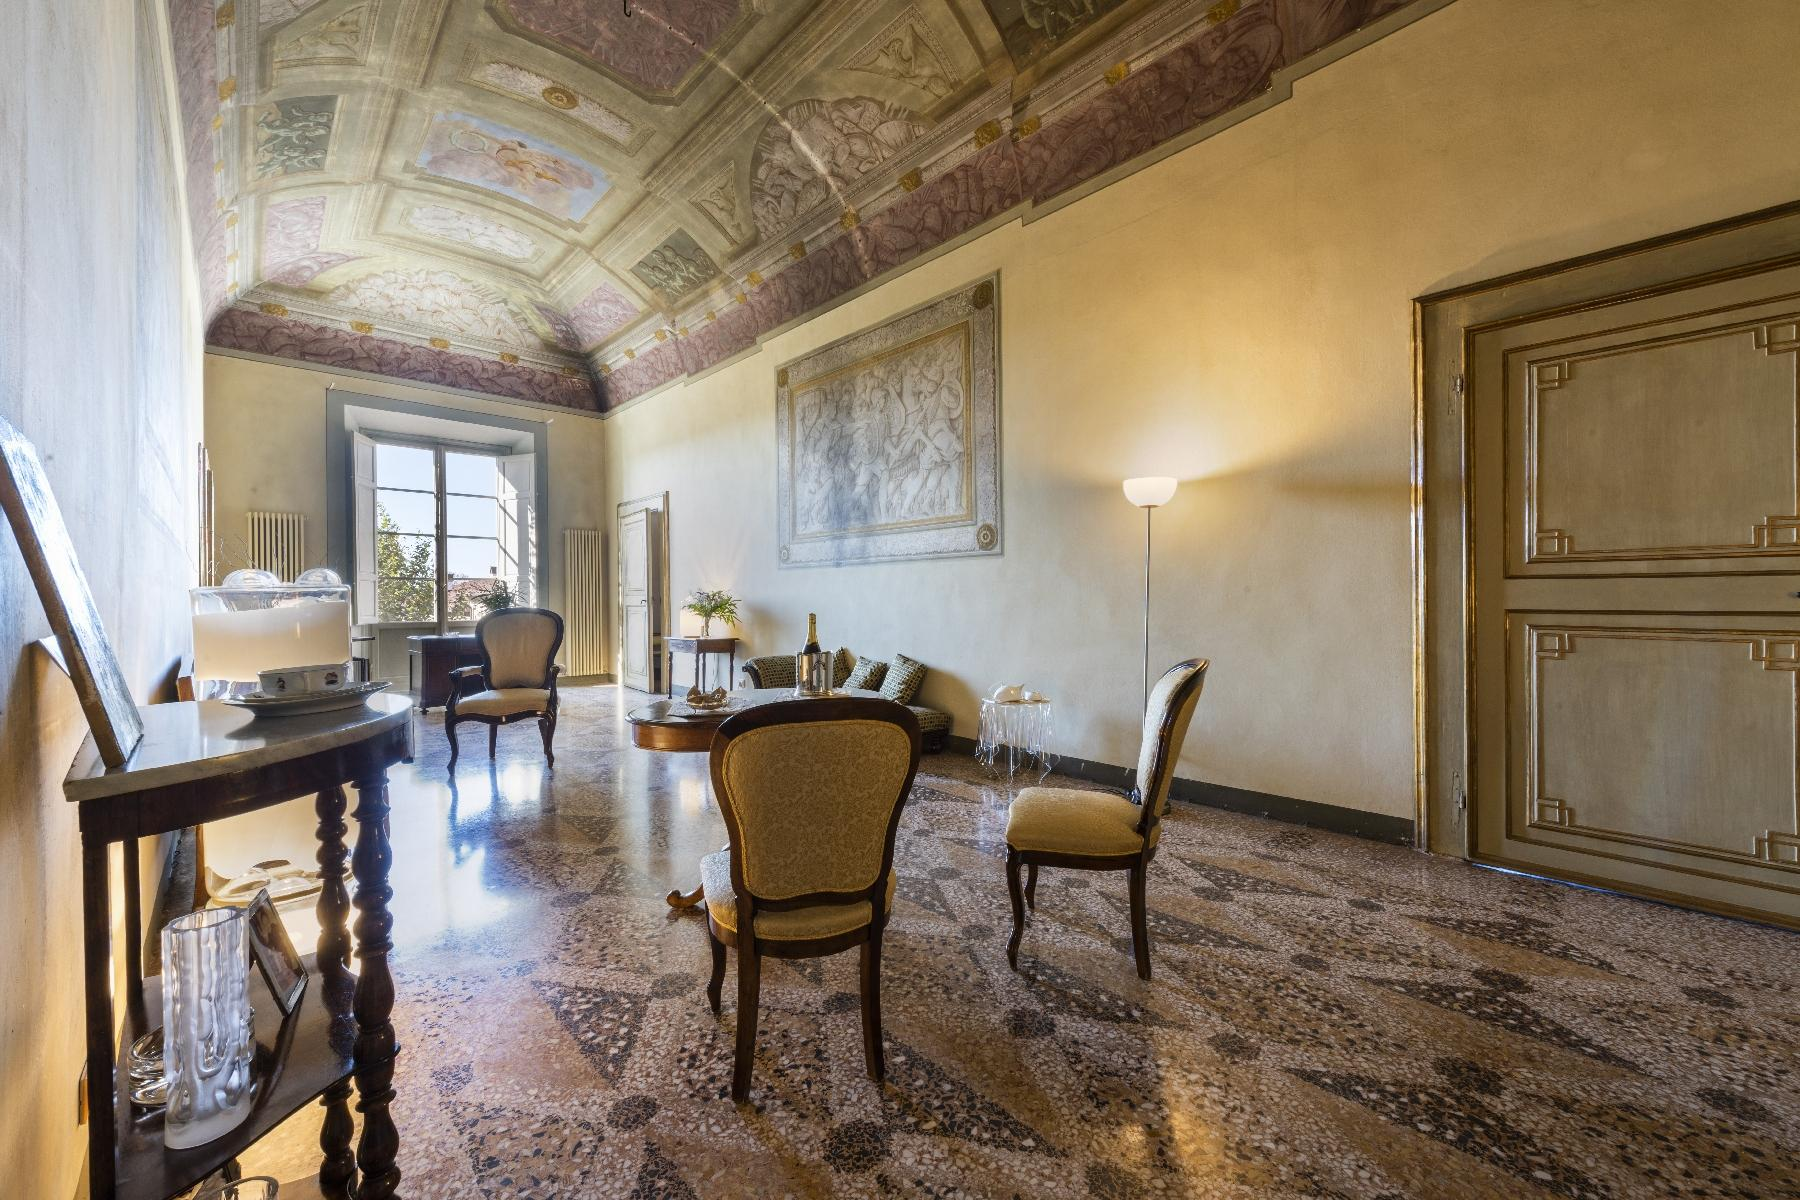 Stunning 18th century villa in the heart of Tuscany - 9